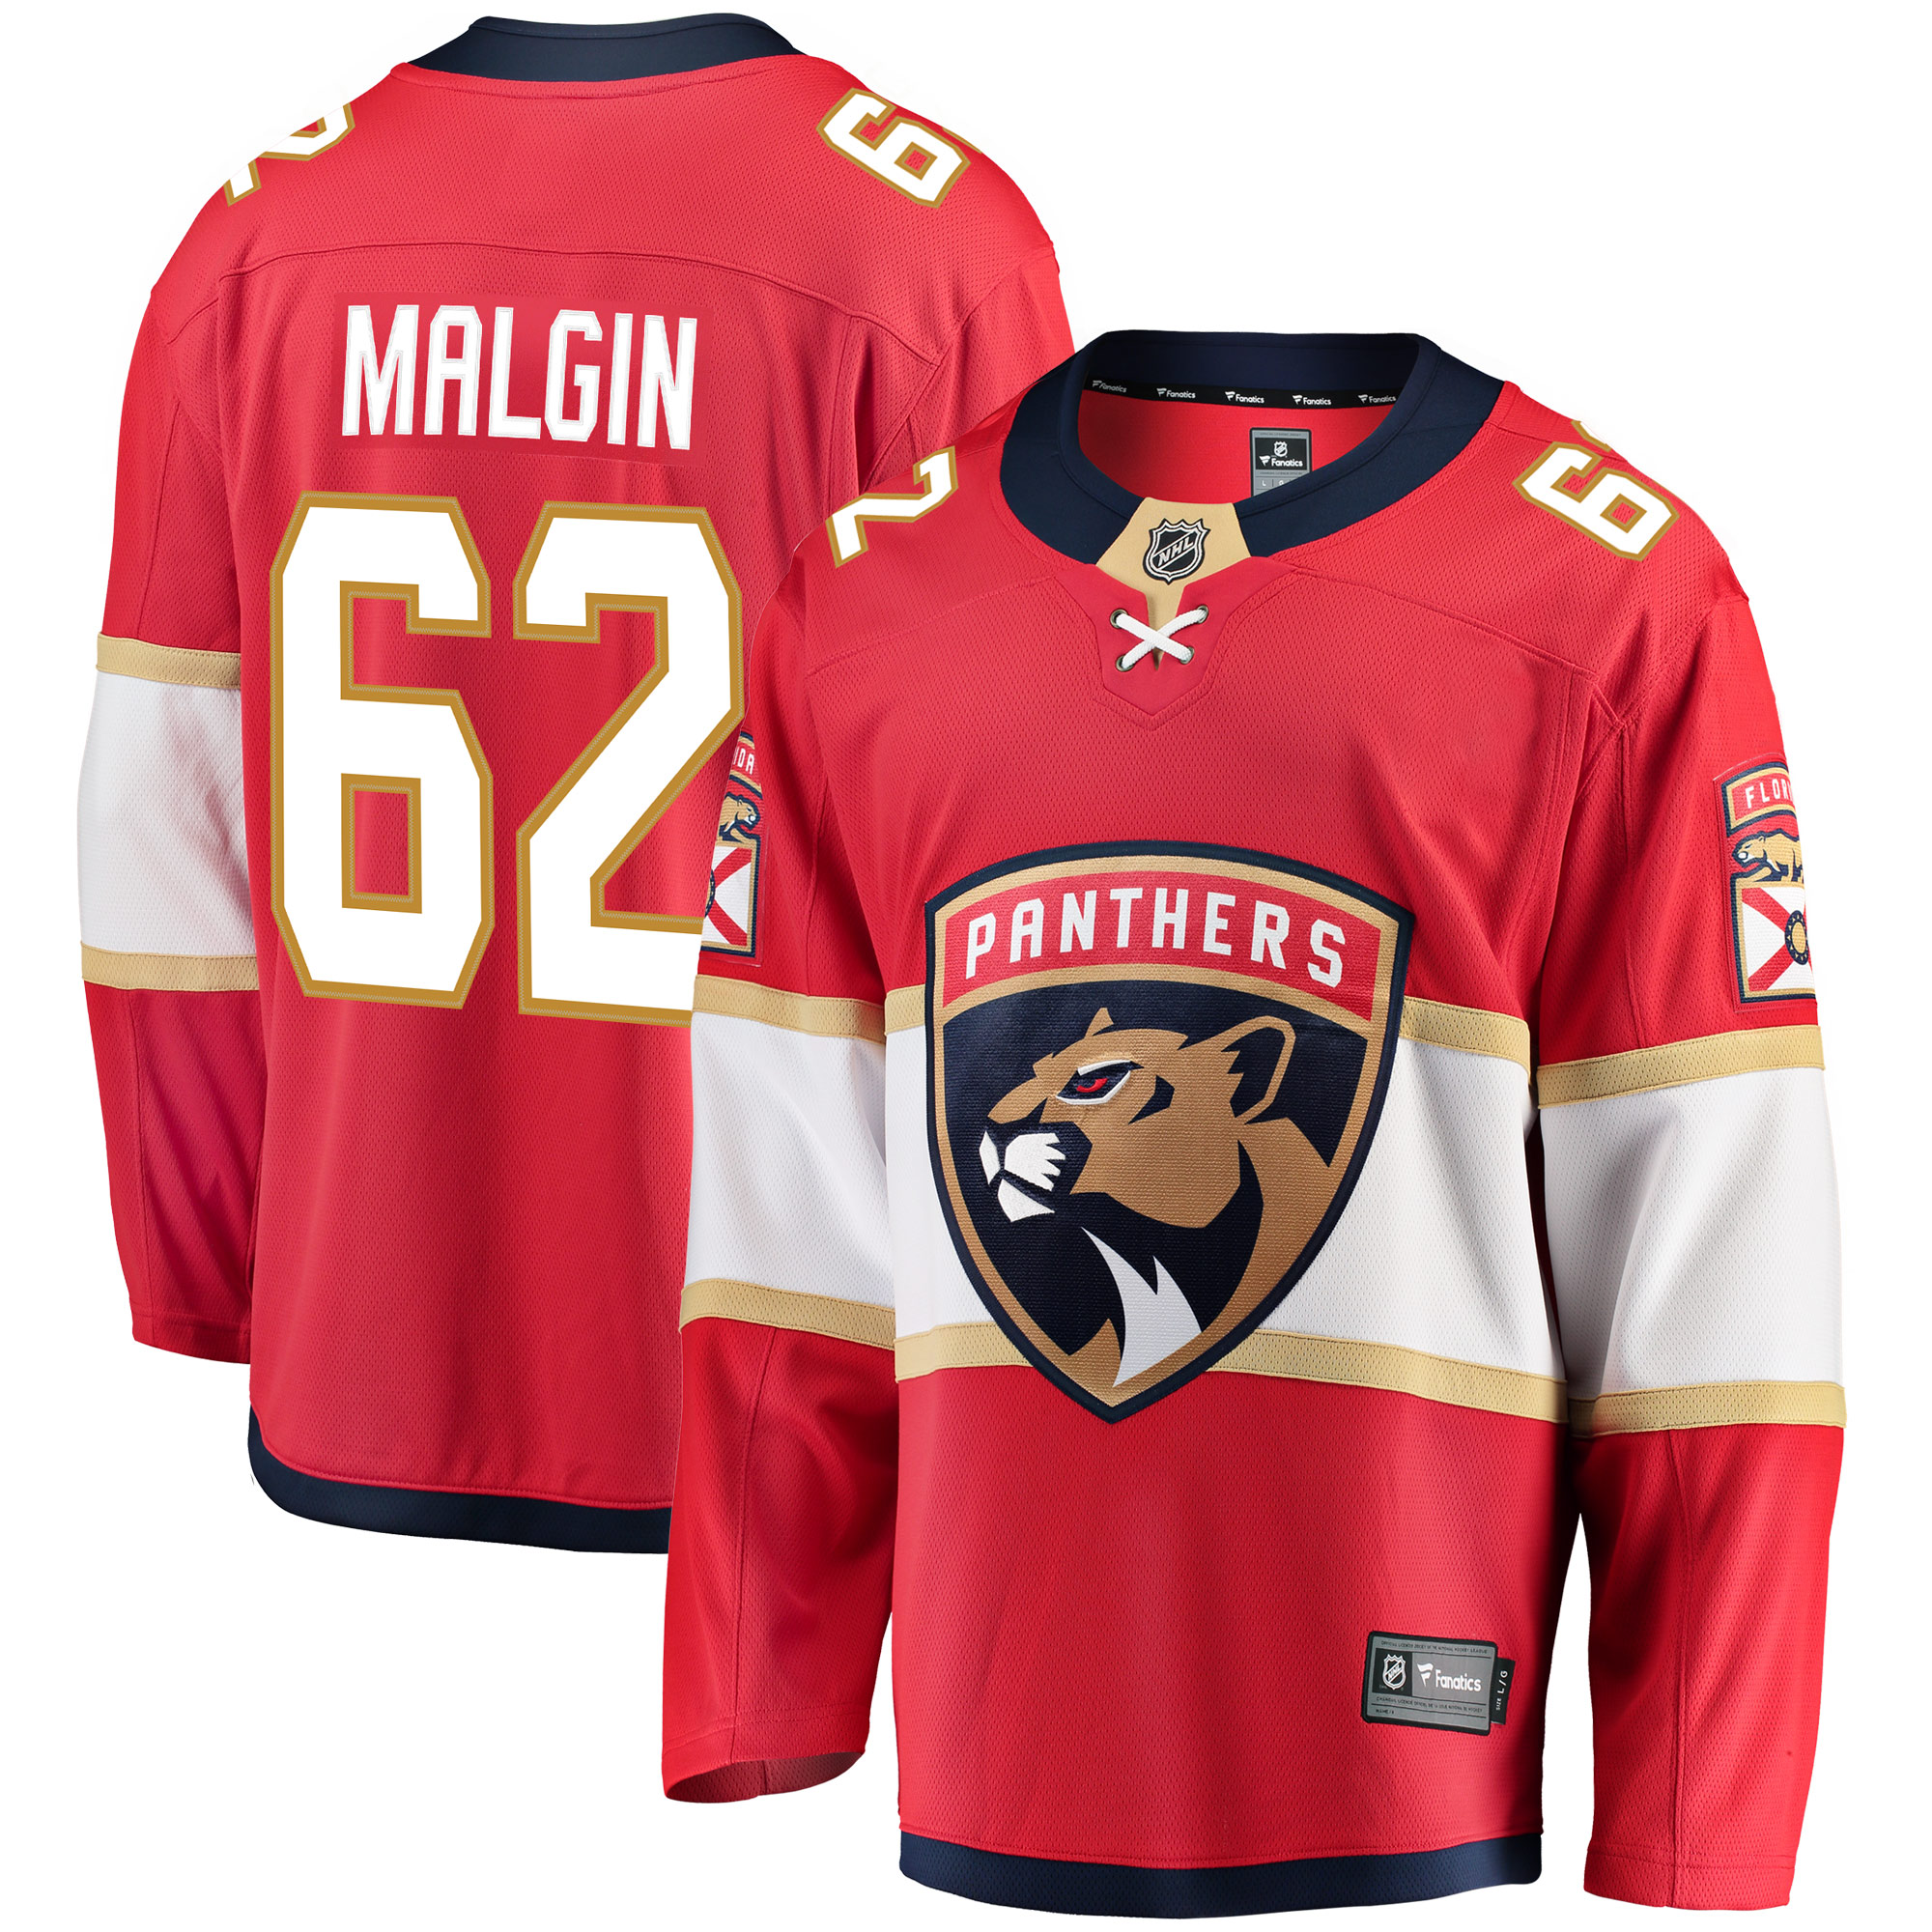 Denis Malgin Florida Panthers Fanatics Branded Breakaway Jersey - Red